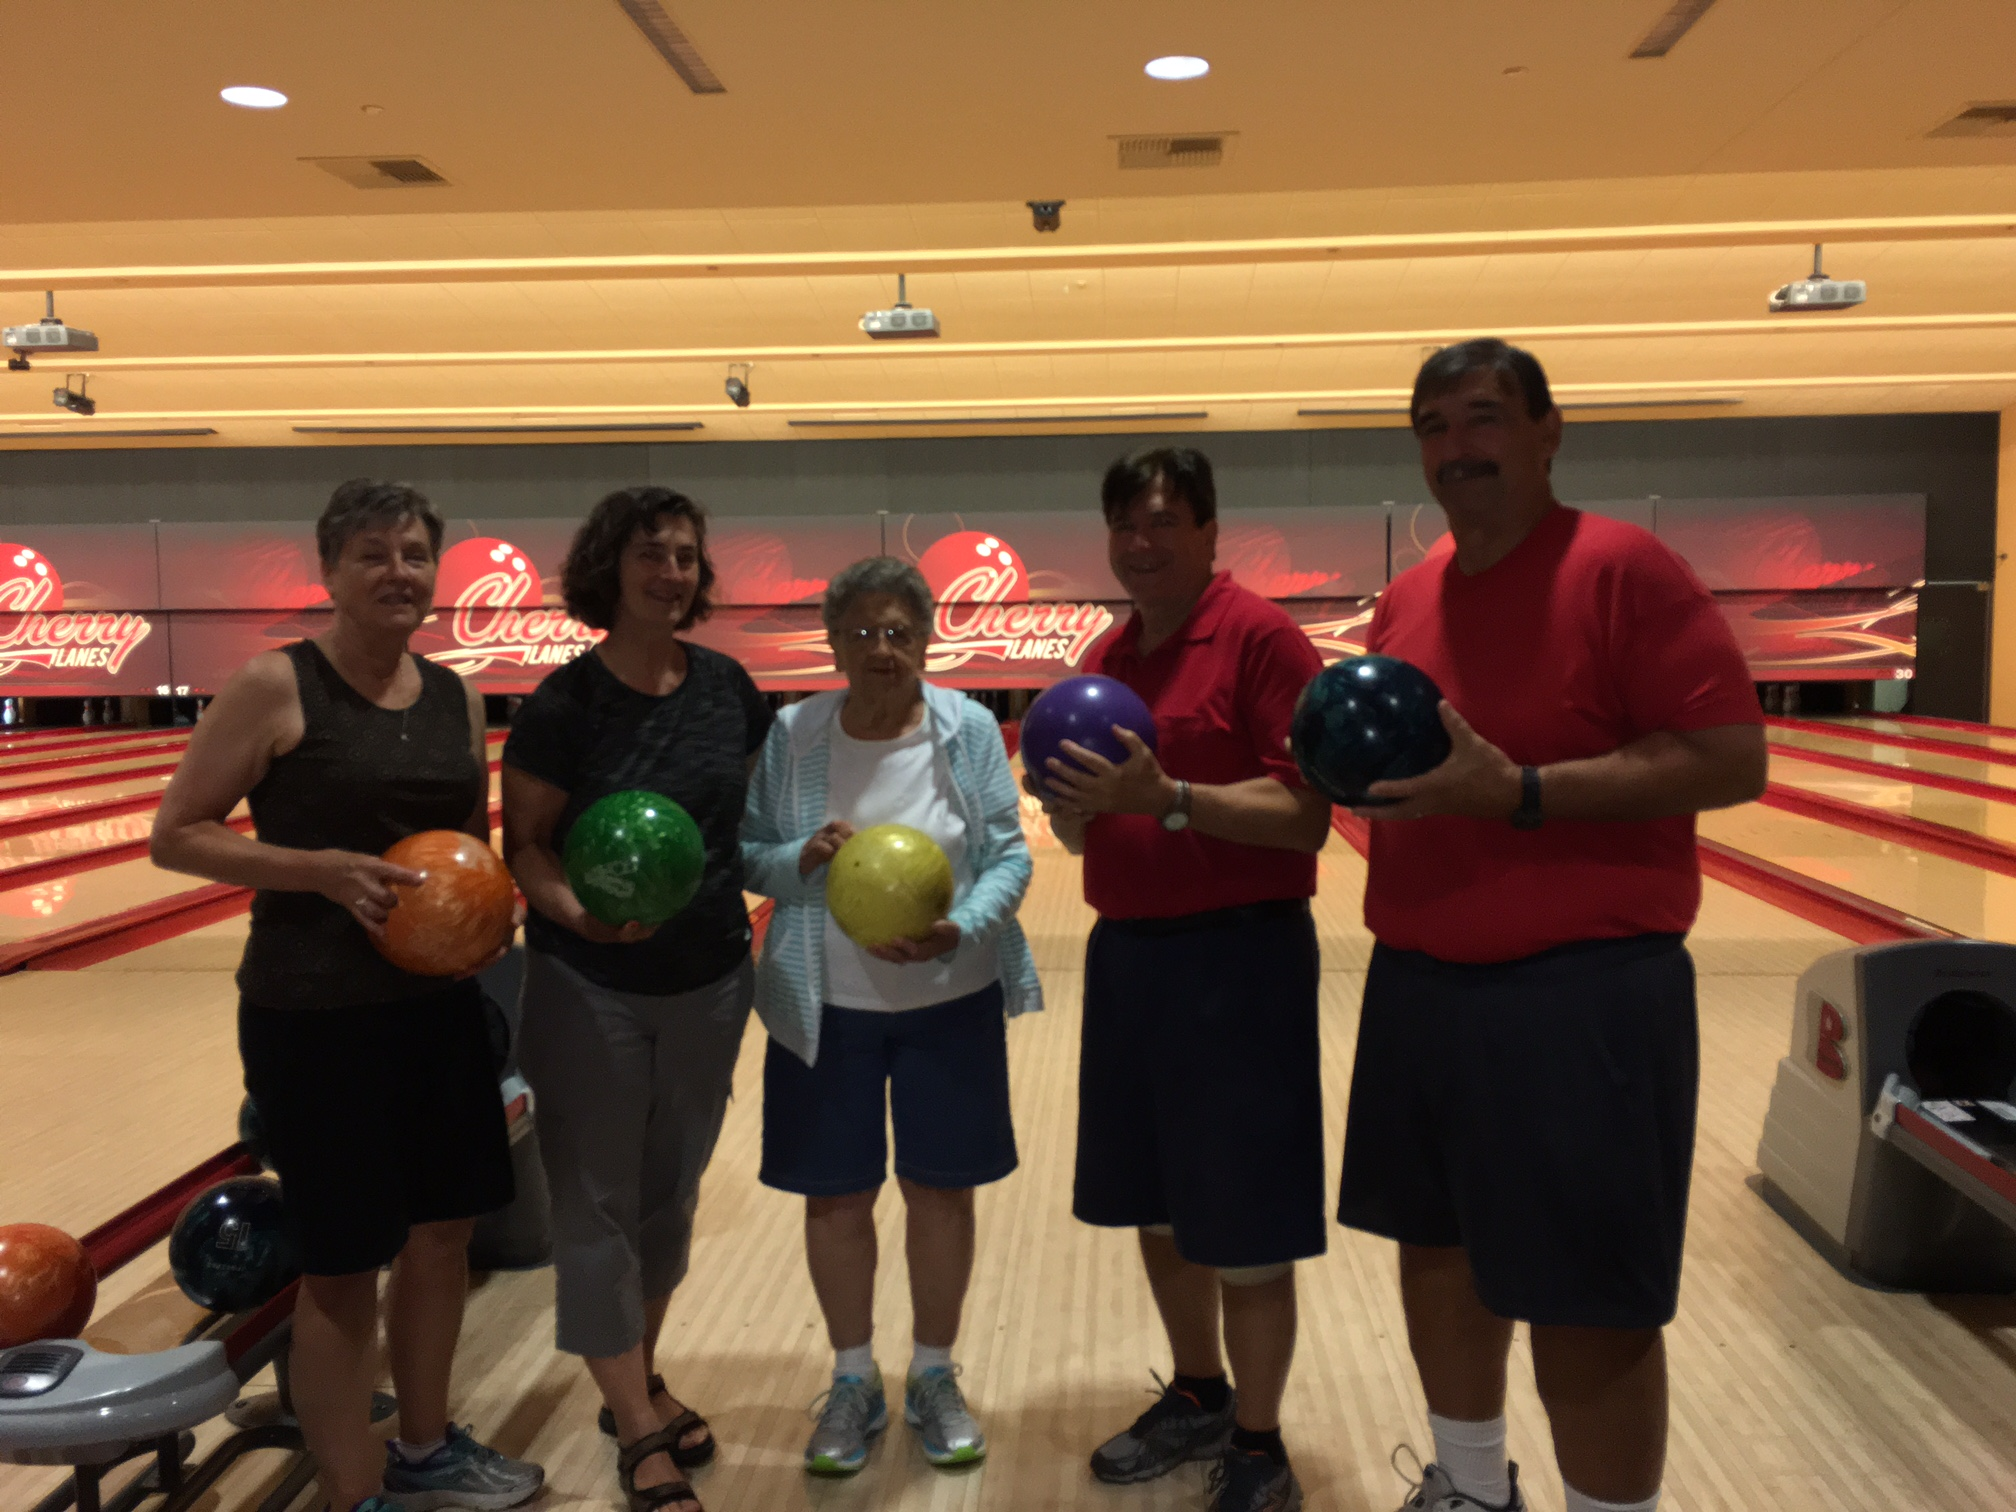 Bowling at Cherry Lanes:  Cindy Wagner, Ann Ackerman. Mary Lou Wagner, John Wagner, and Paul Wagner